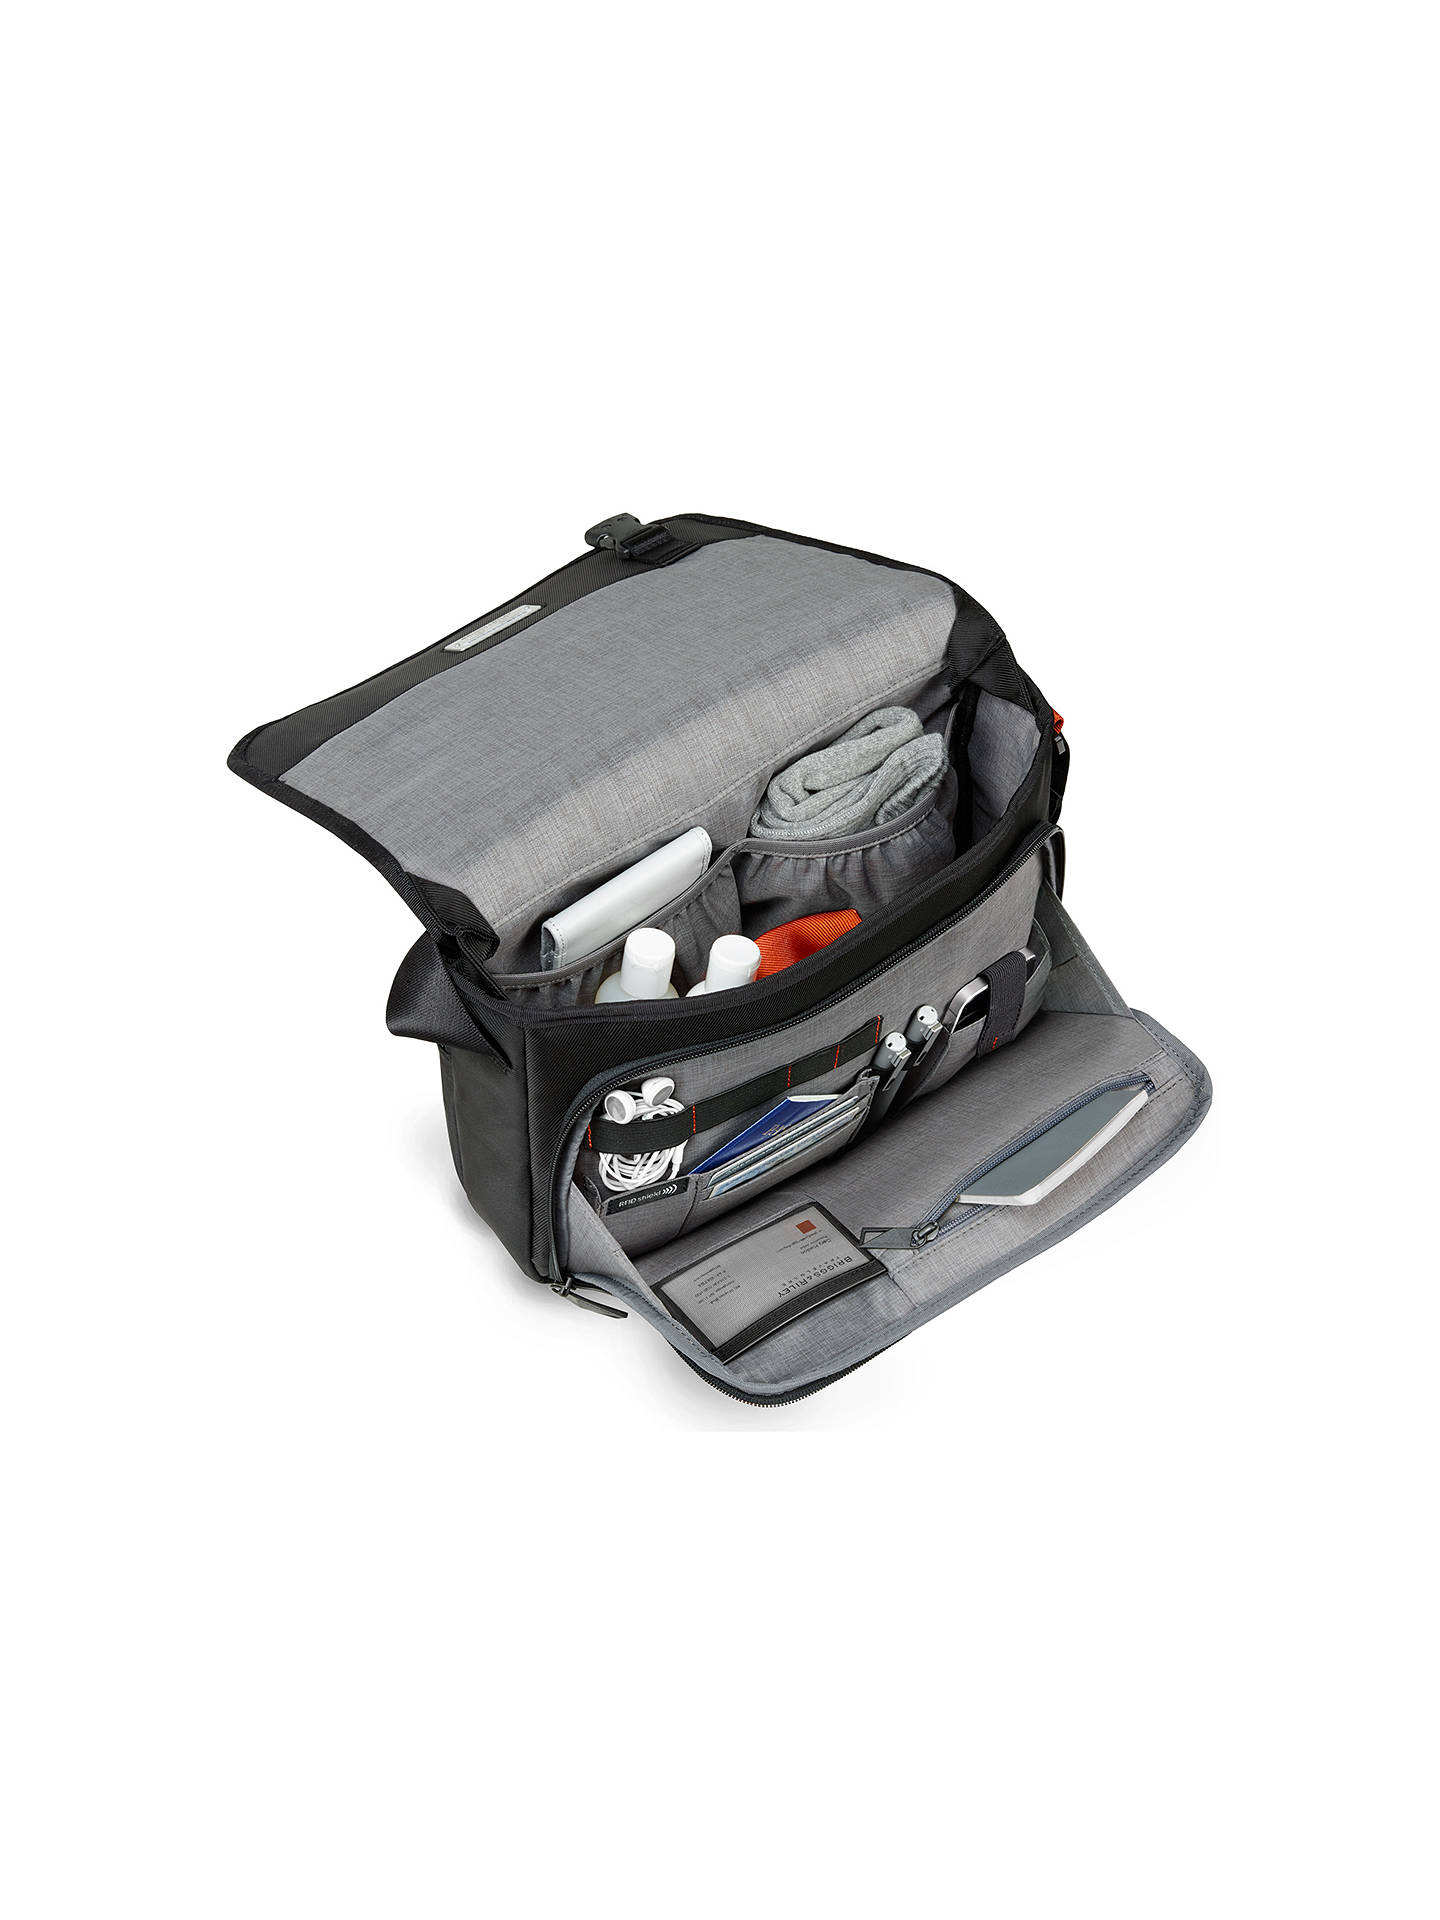 BuyBriggs & Riley Verb Instant Messenger Bag, Black Online at johnlewis.com